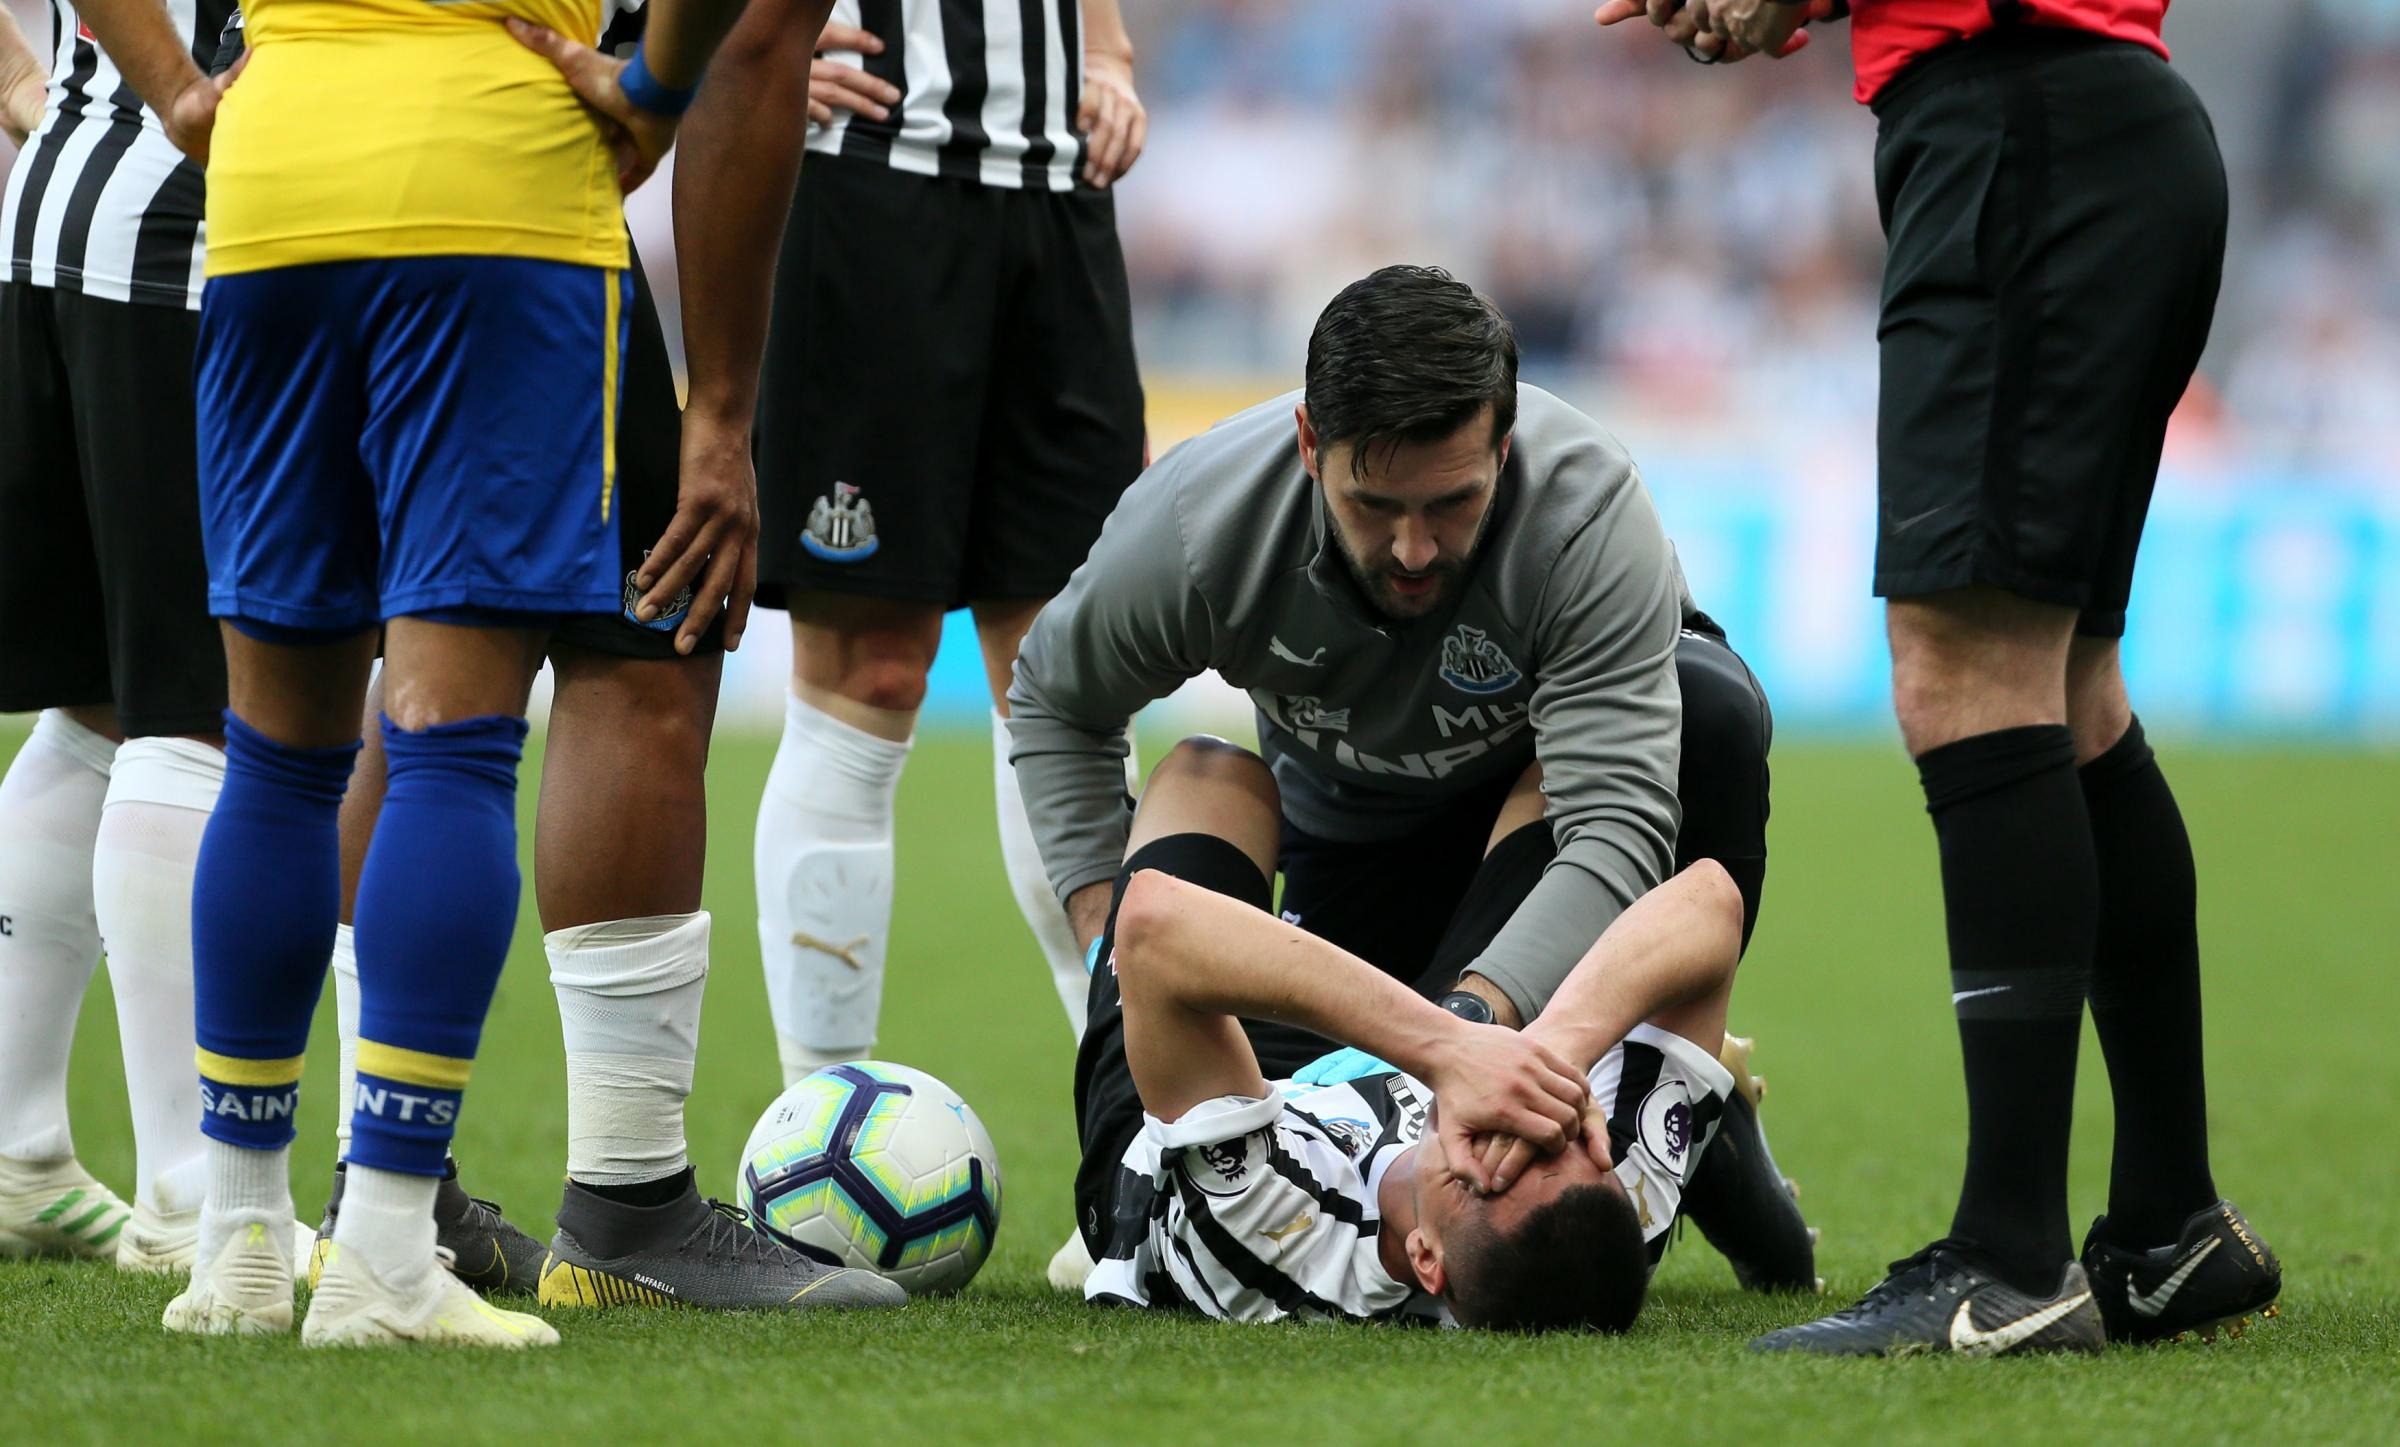 INJURY BLOW: Miguel Almiron receives treatment before leaving the field (Picture: Richard Sellers/PA Wire)